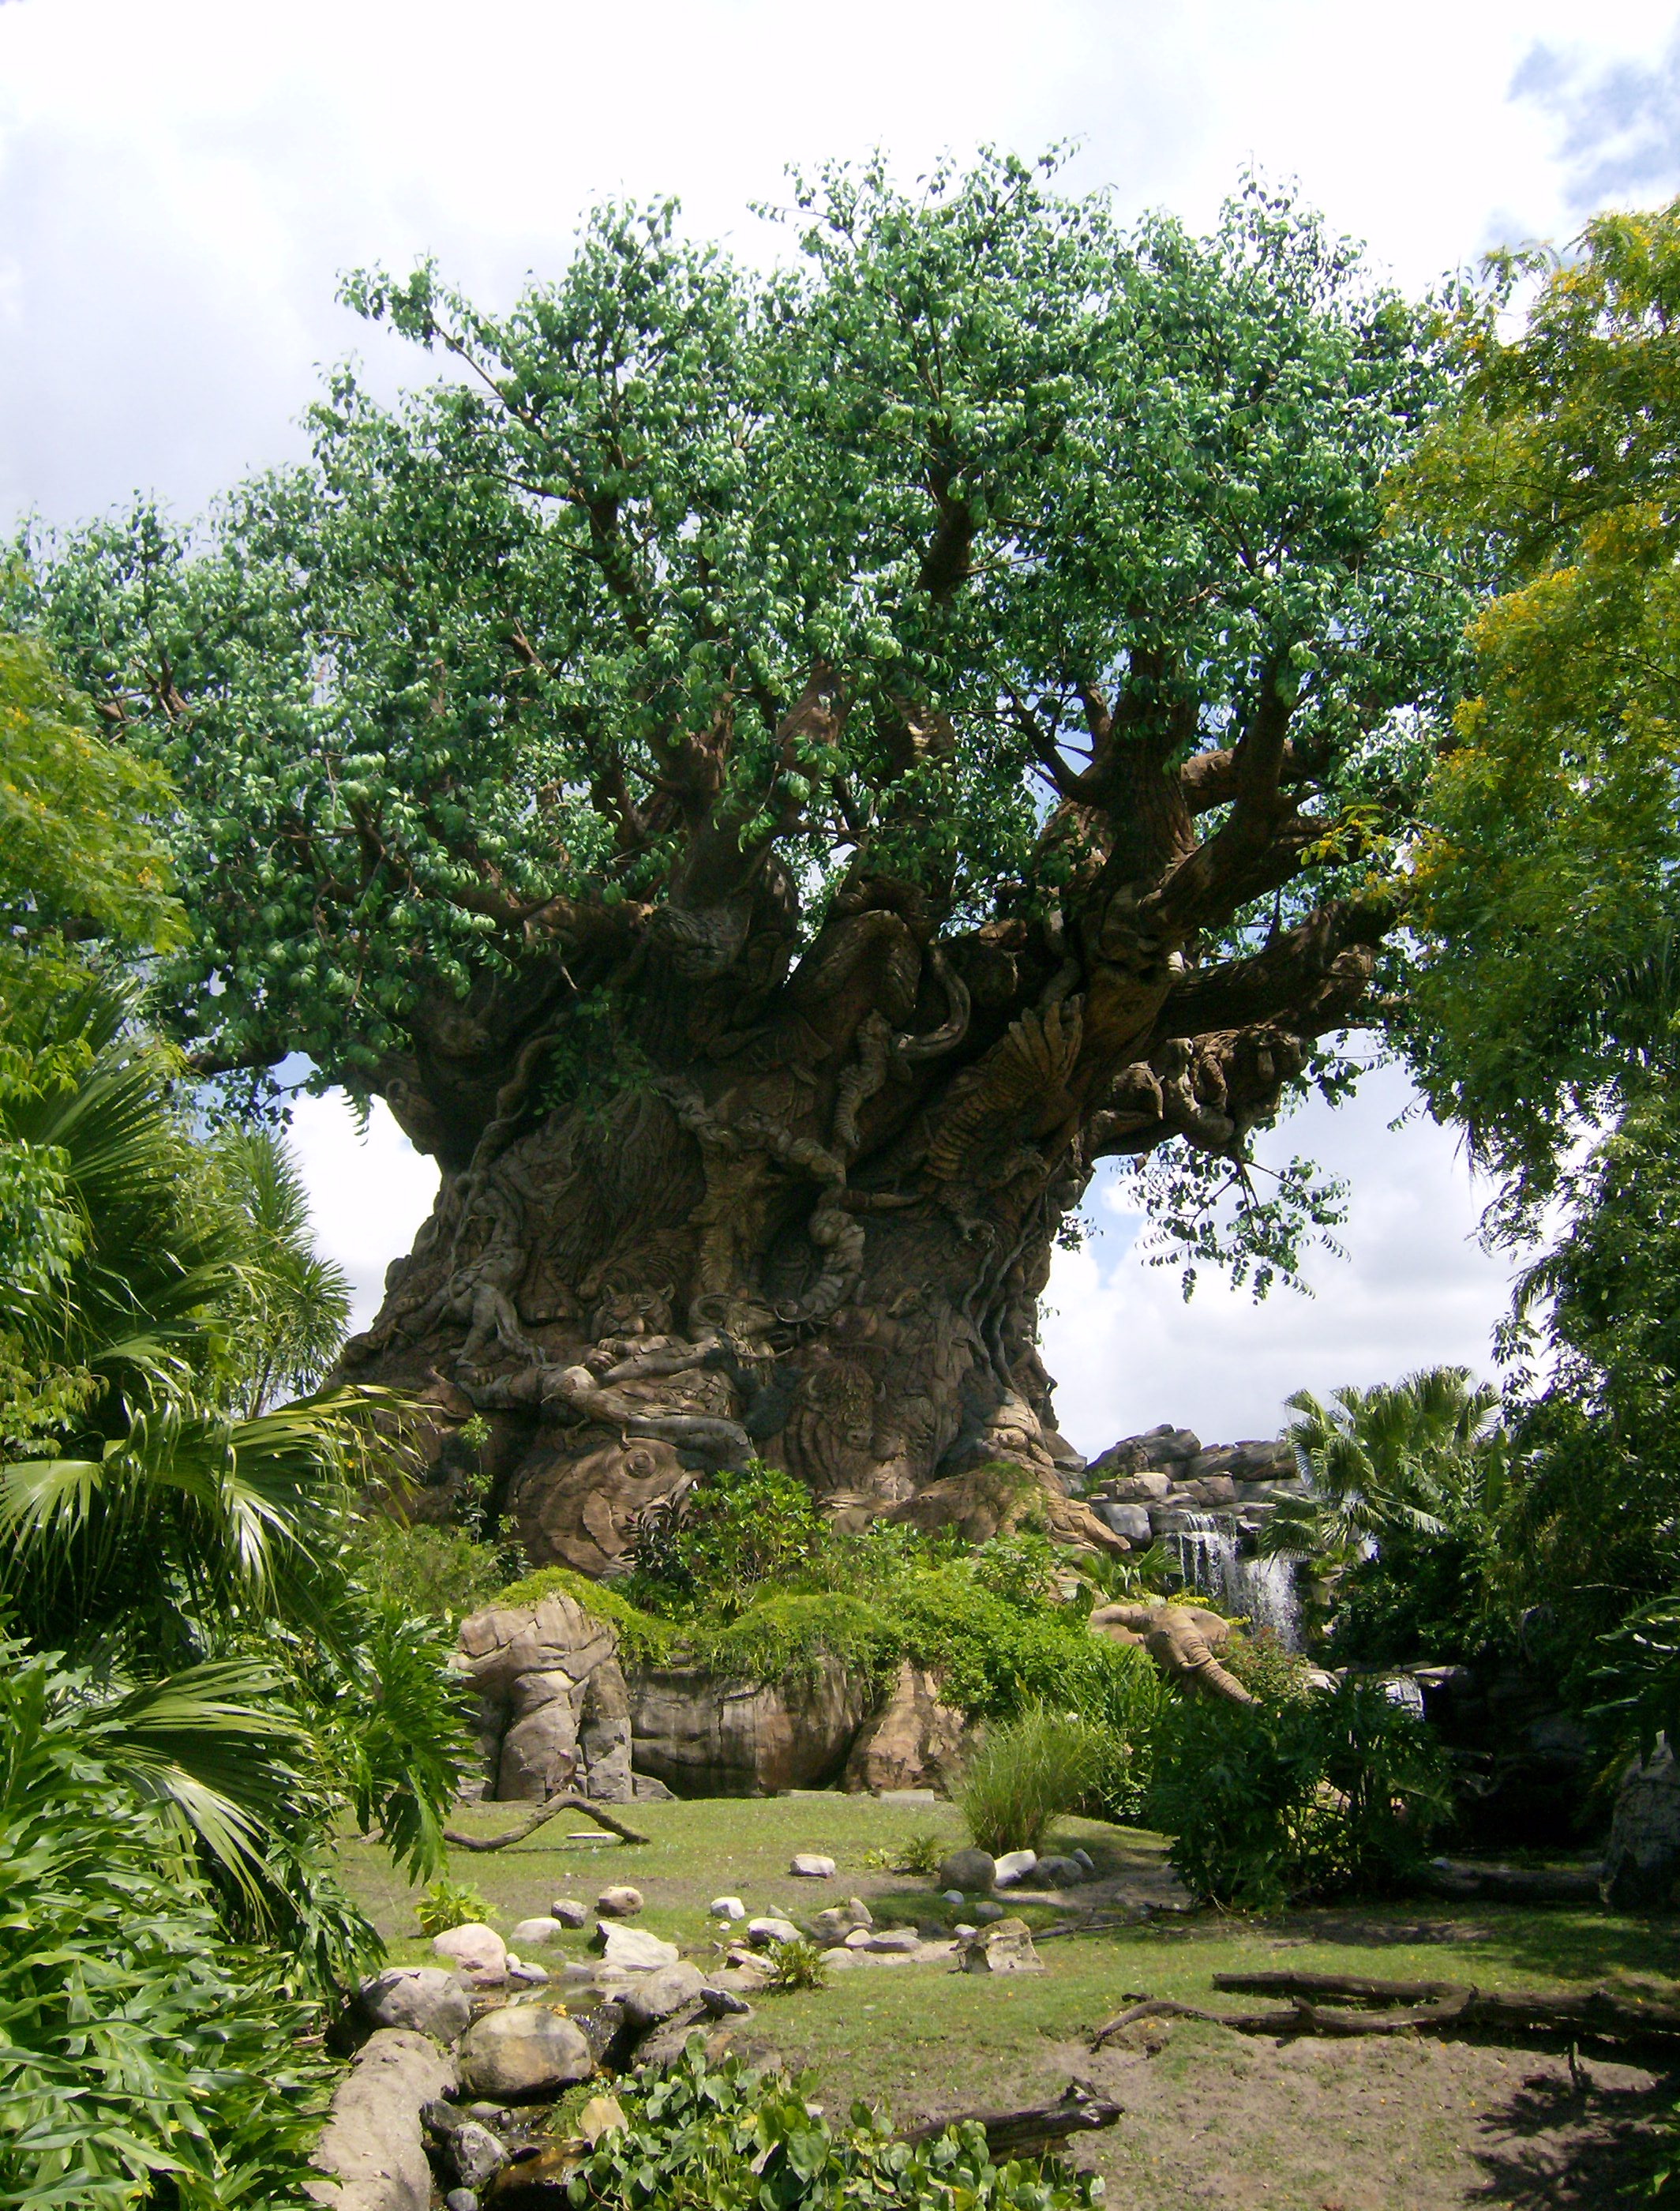 Tree Of Life Disney Wiki Fandom there are parts of tthe tree of life that are mesmerizing and awe inspiring, however, there are other parts that should have been left on the cutting room floor. tree of life disney wiki fandom